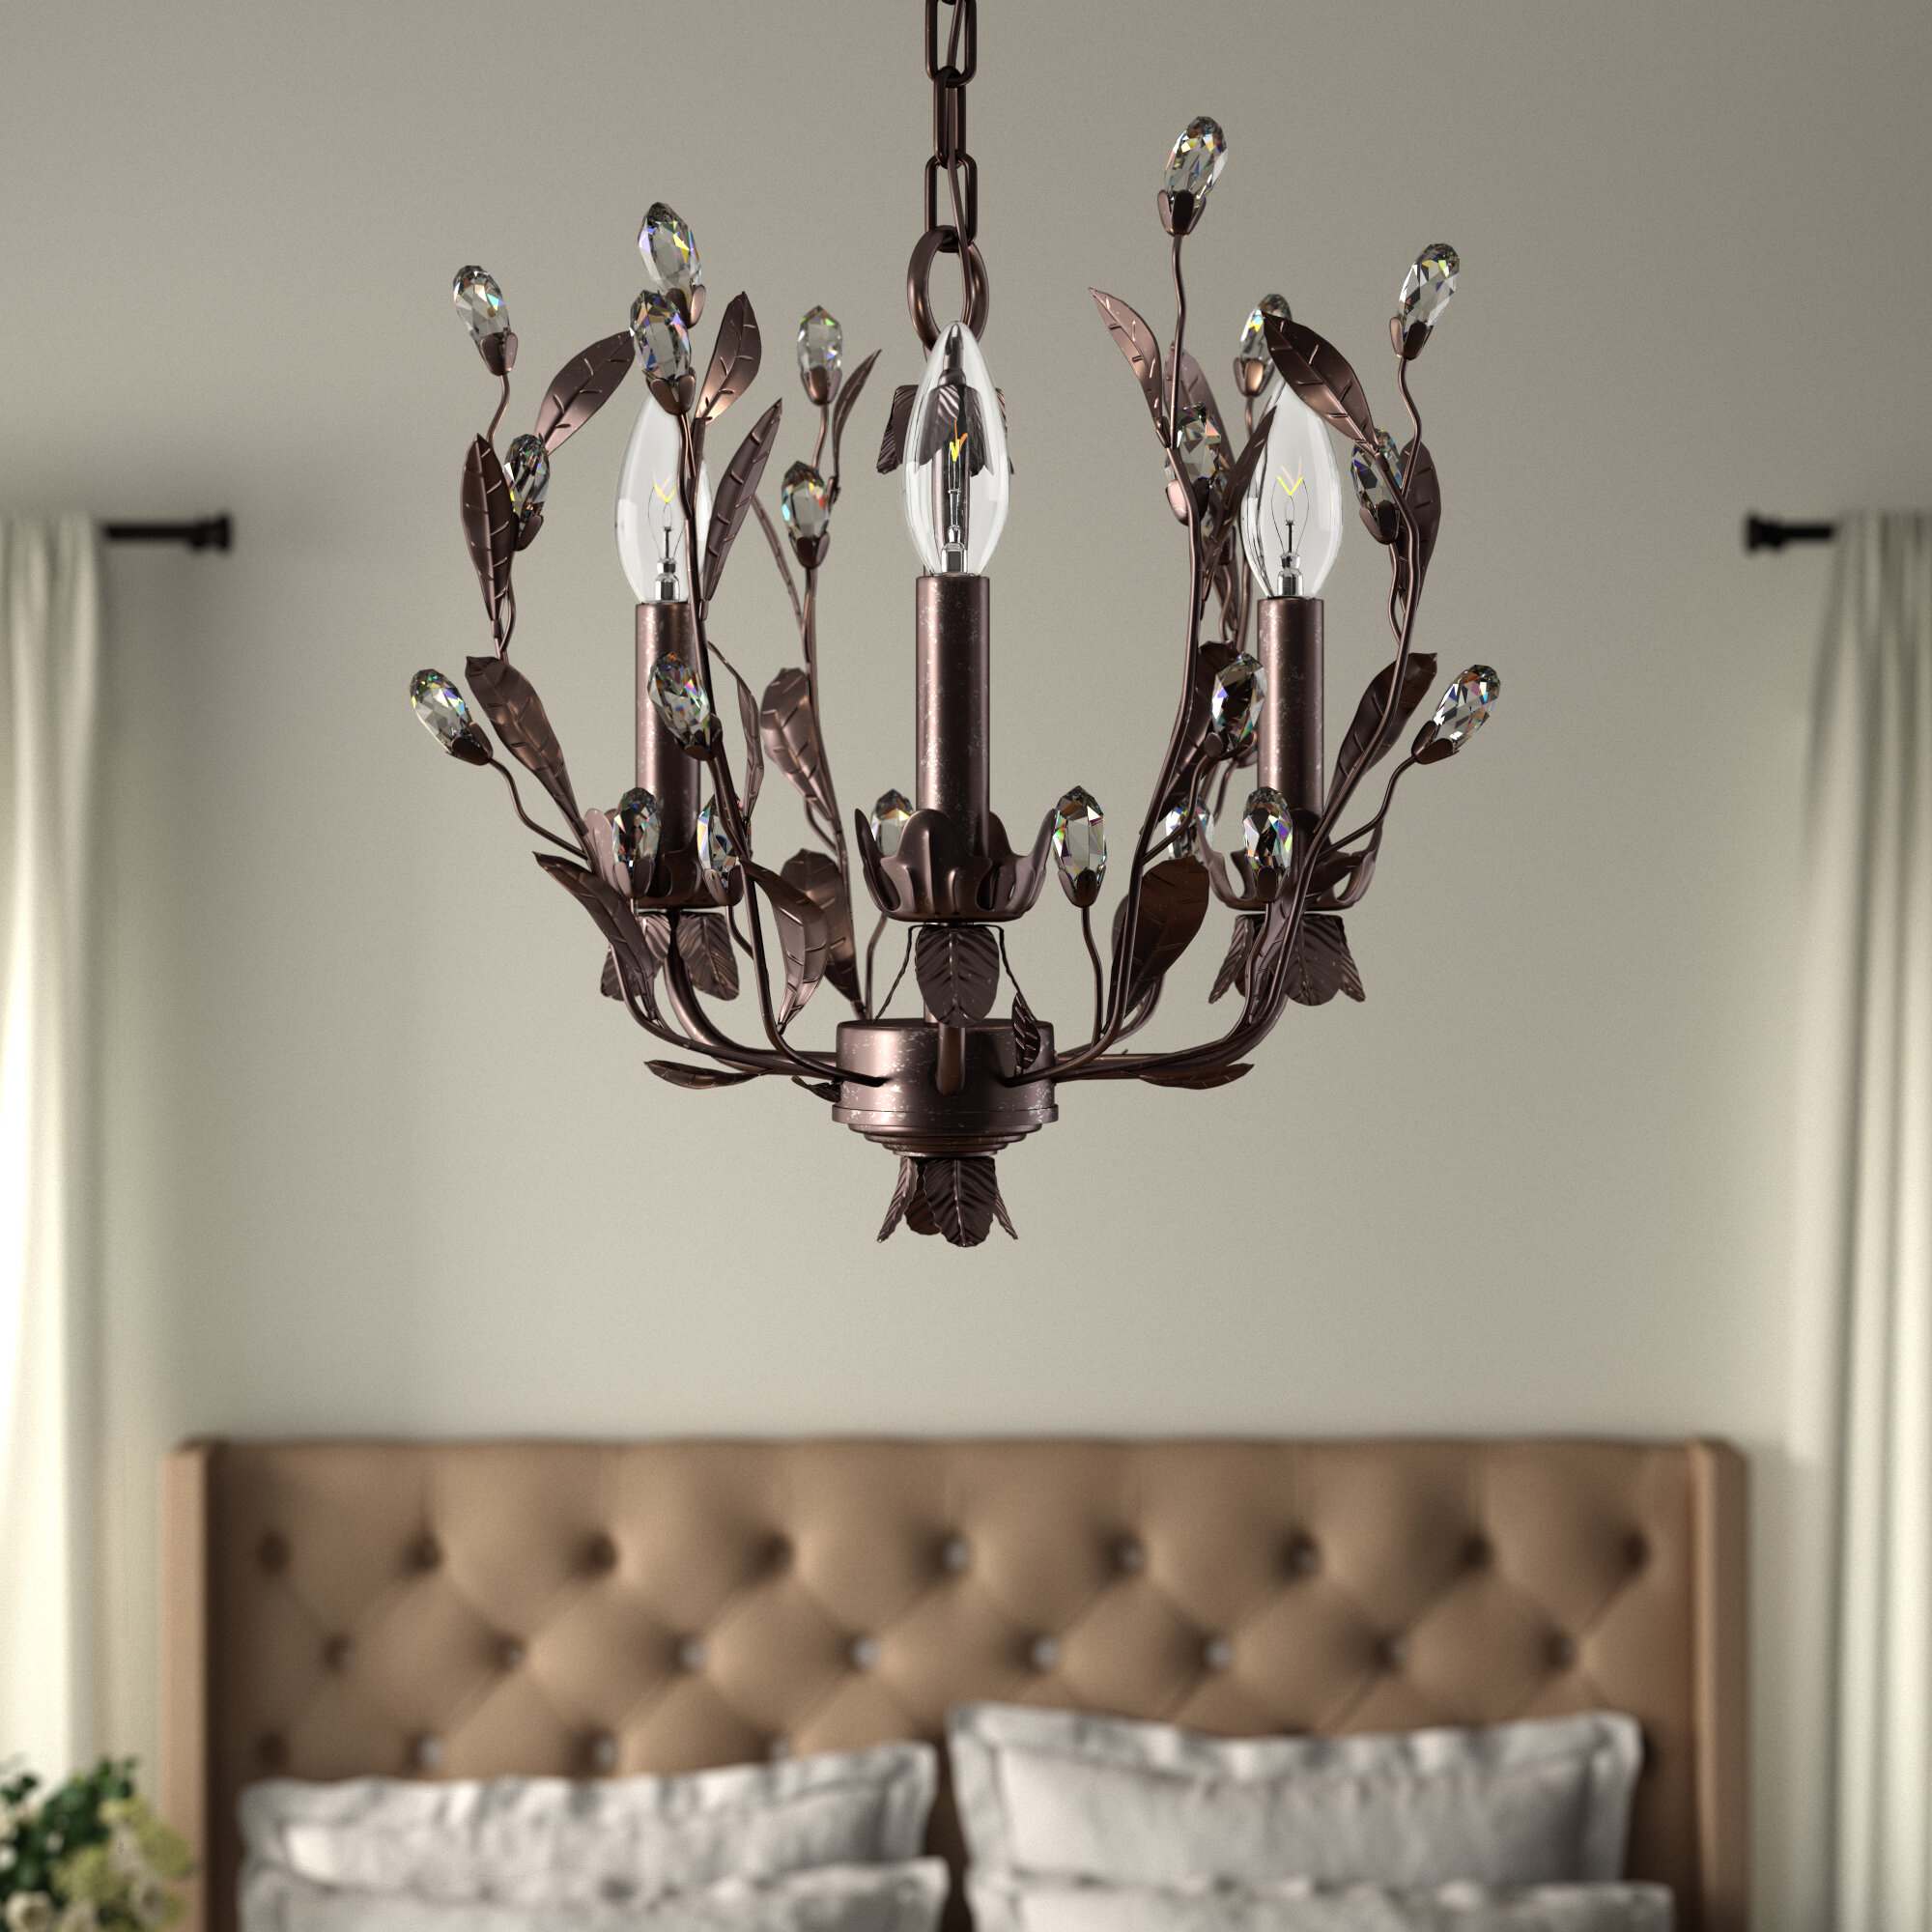 Giovanna 3 Light Candle Style Chandelier & Reviews   Joss & Main With Regard To Hesse 5 Light Candle Style Chandeliers (View 11 of 30)